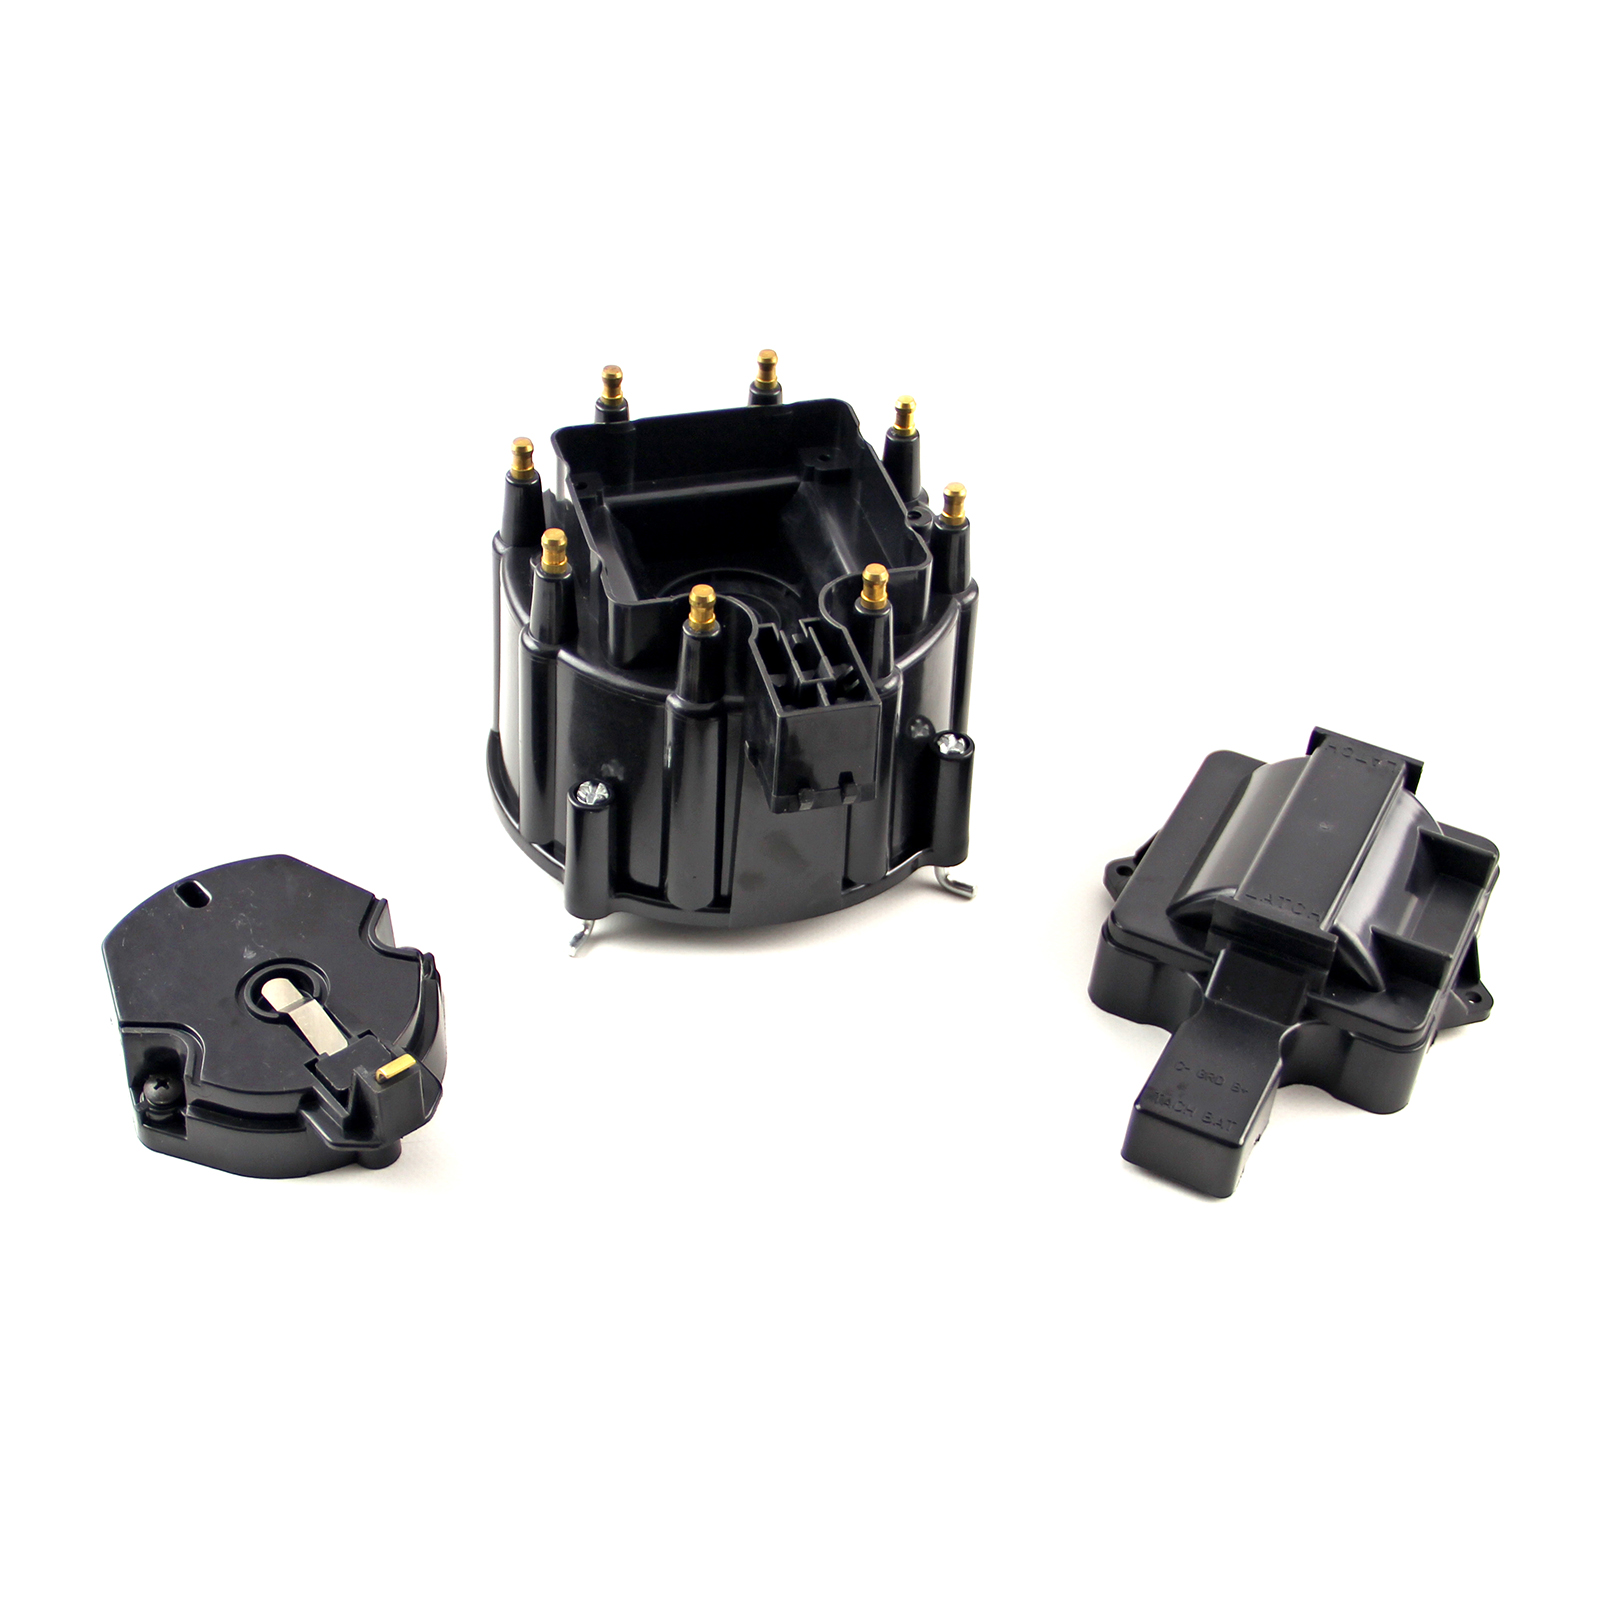 HEI Distributor Cap and Coil Cover - Black